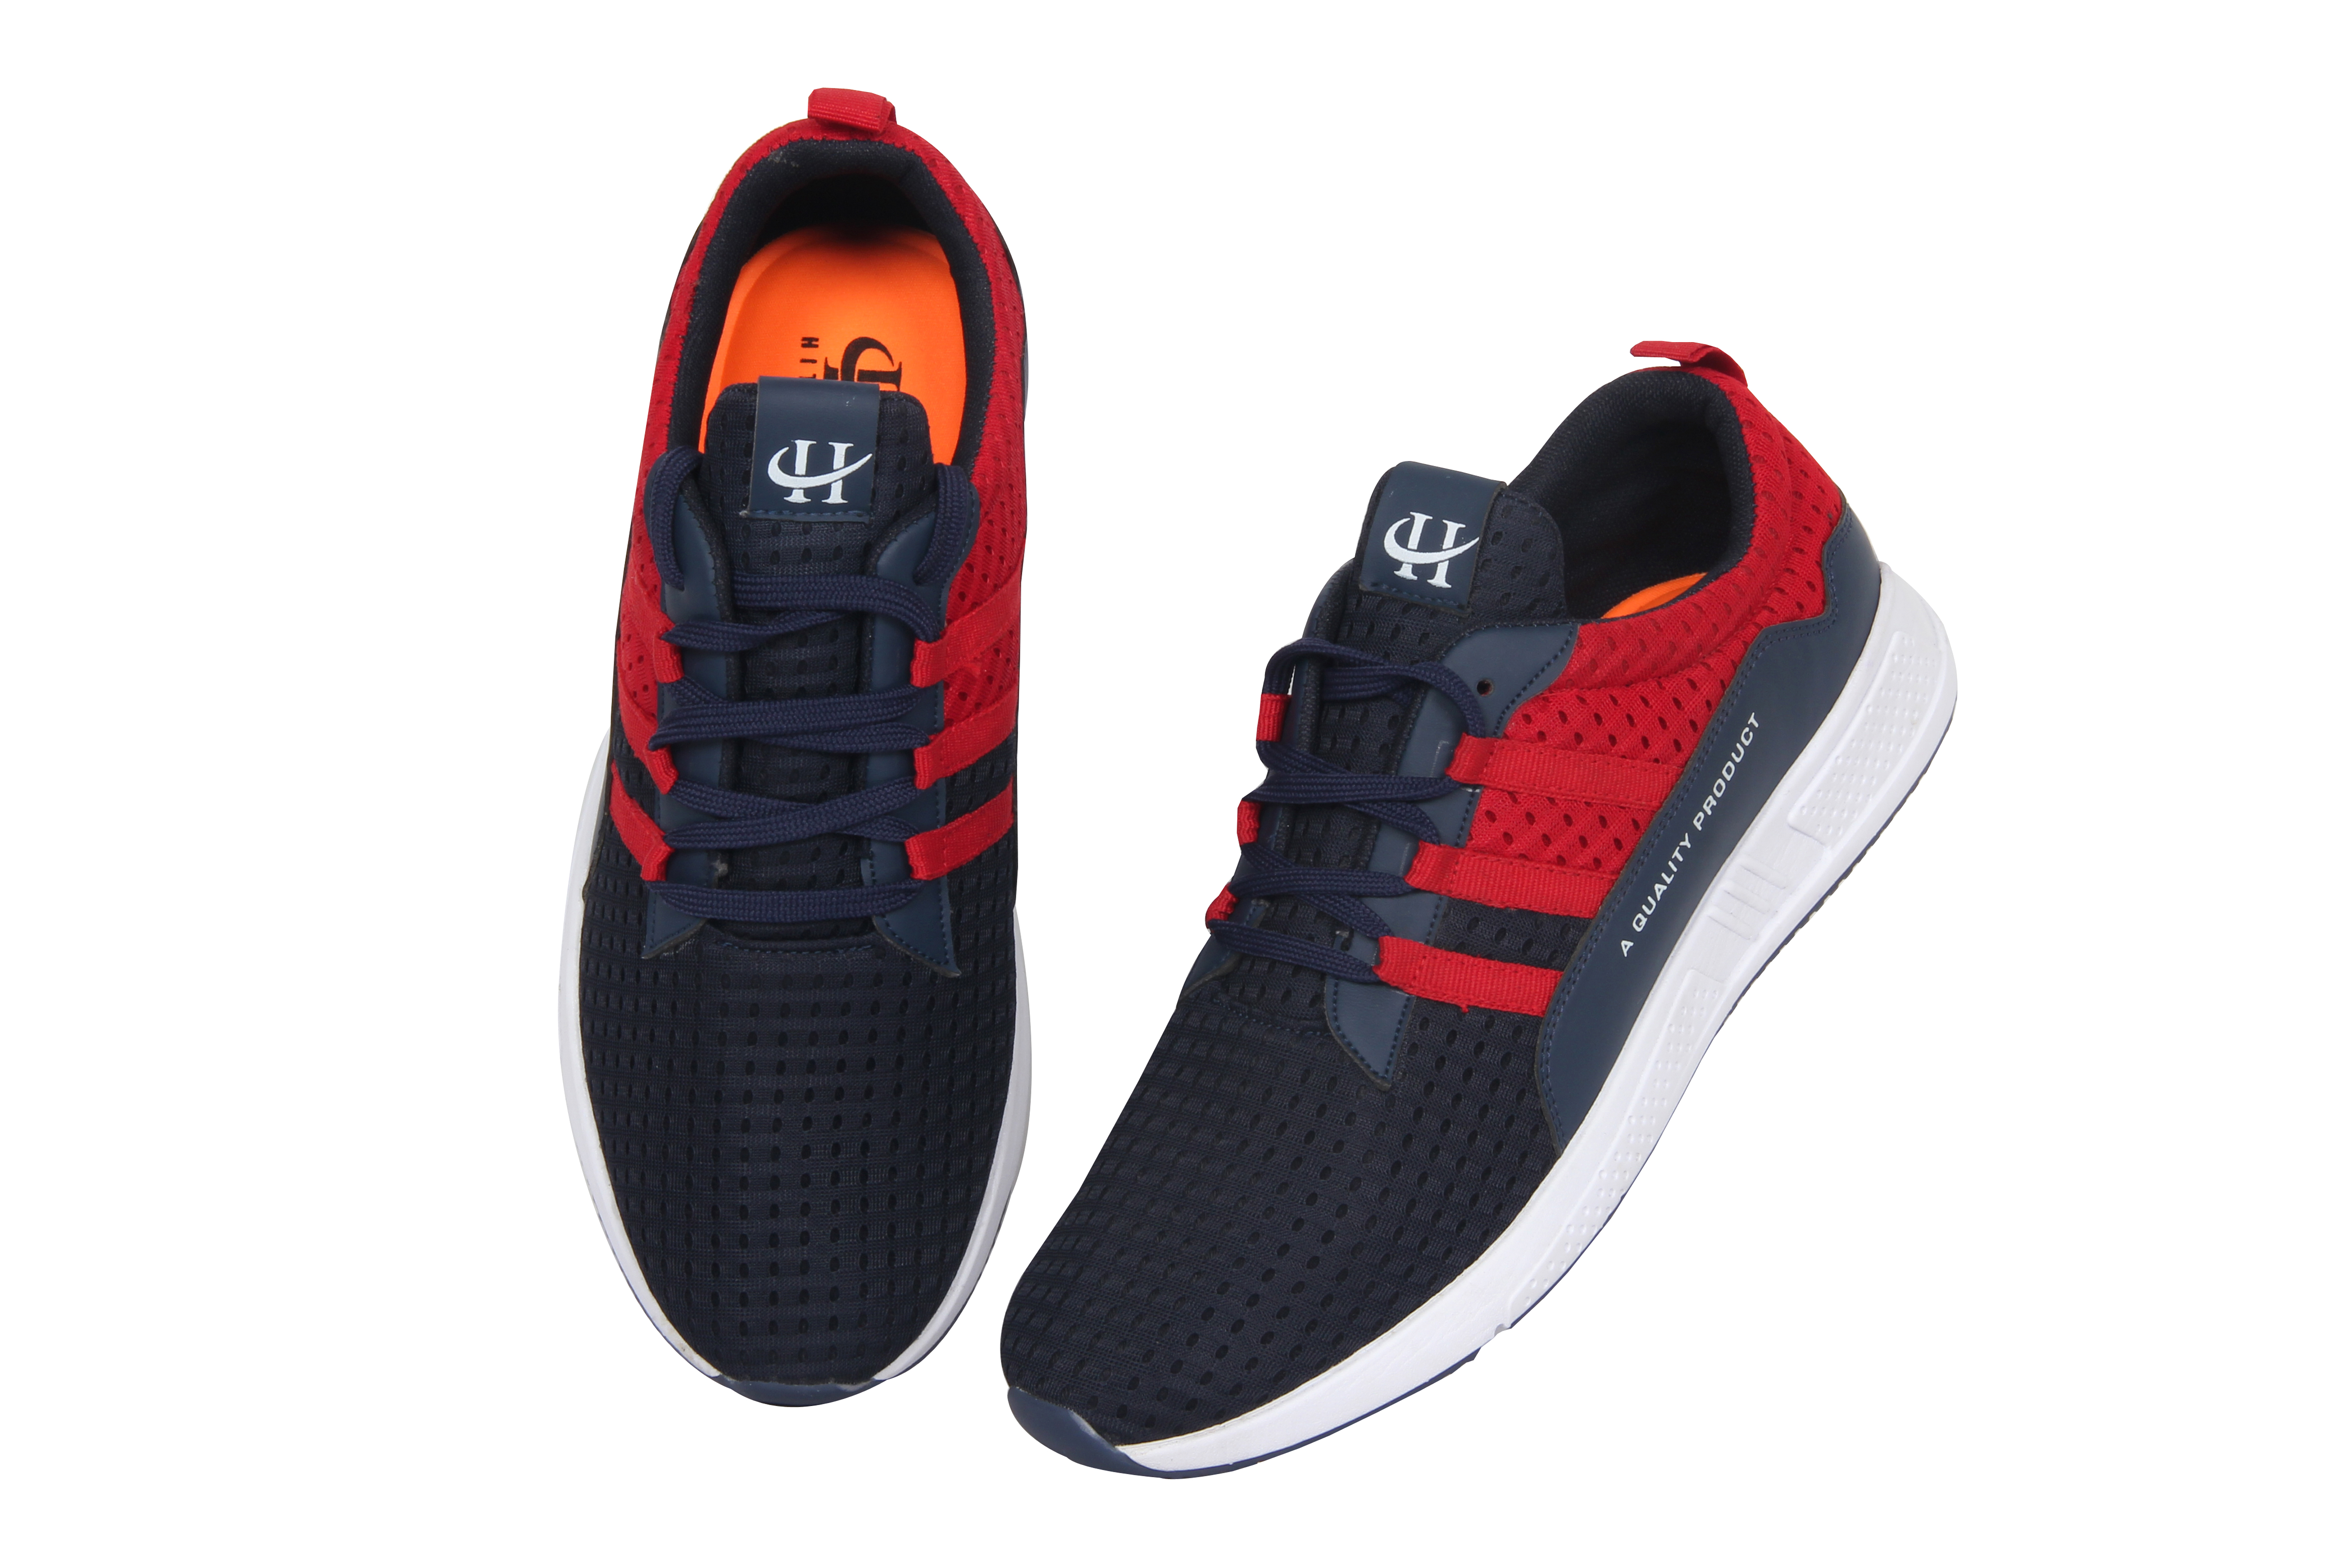 Mens Stylish Casual Comfortable Sneaker Shoes Running Shoes Sports Shoes Walking Shoe For Mens